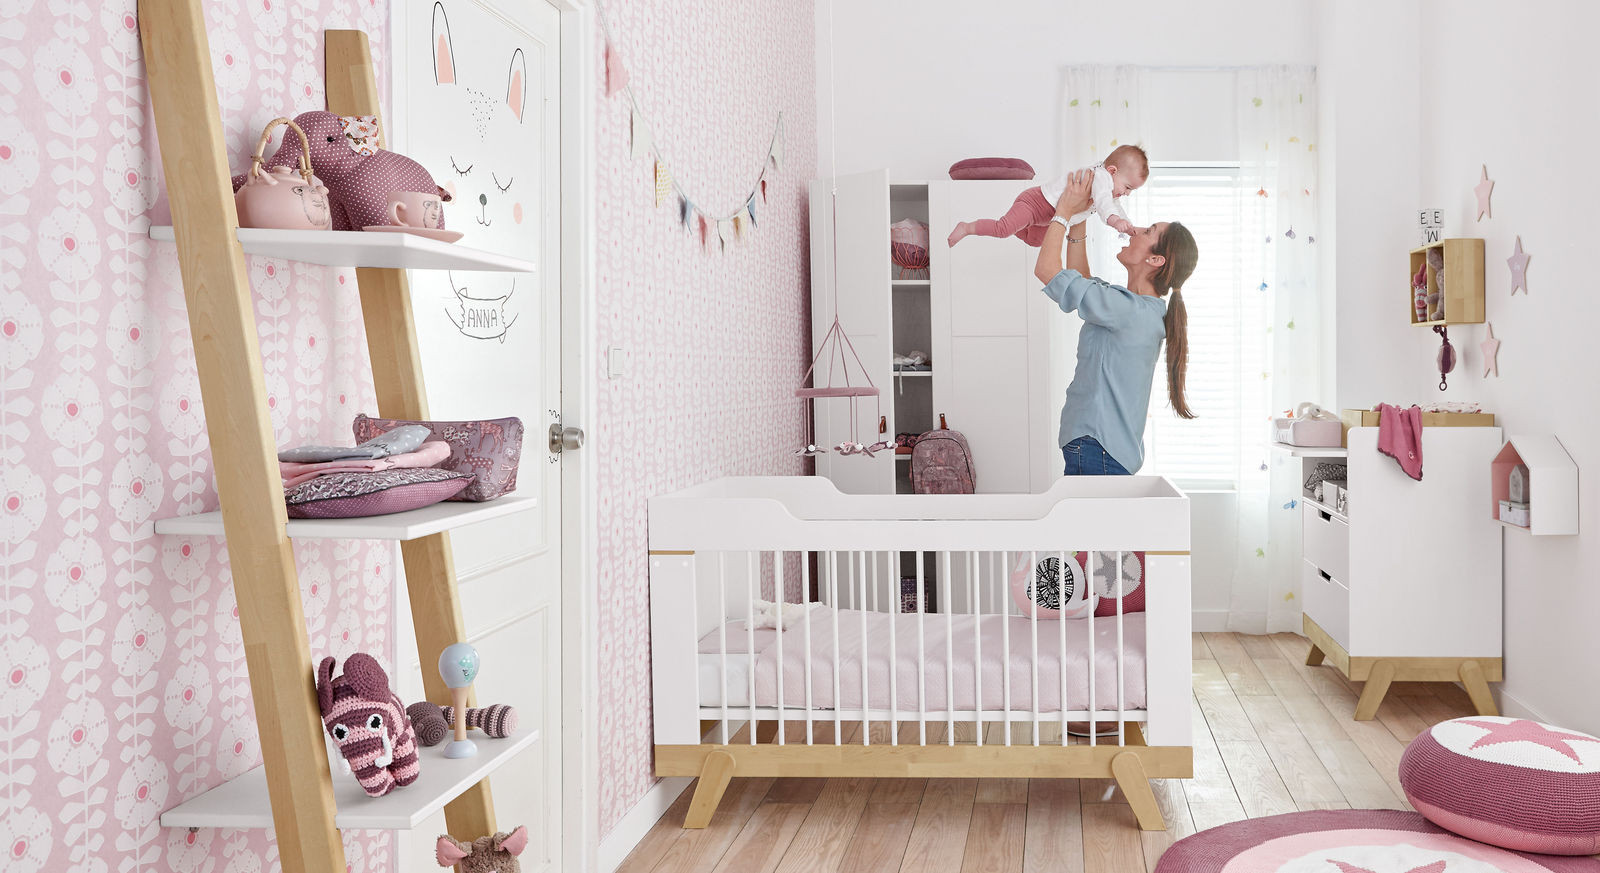 mitwachsendes babyzimmer von lifetime aus massiver birke. Black Bedroom Furniture Sets. Home Design Ideas